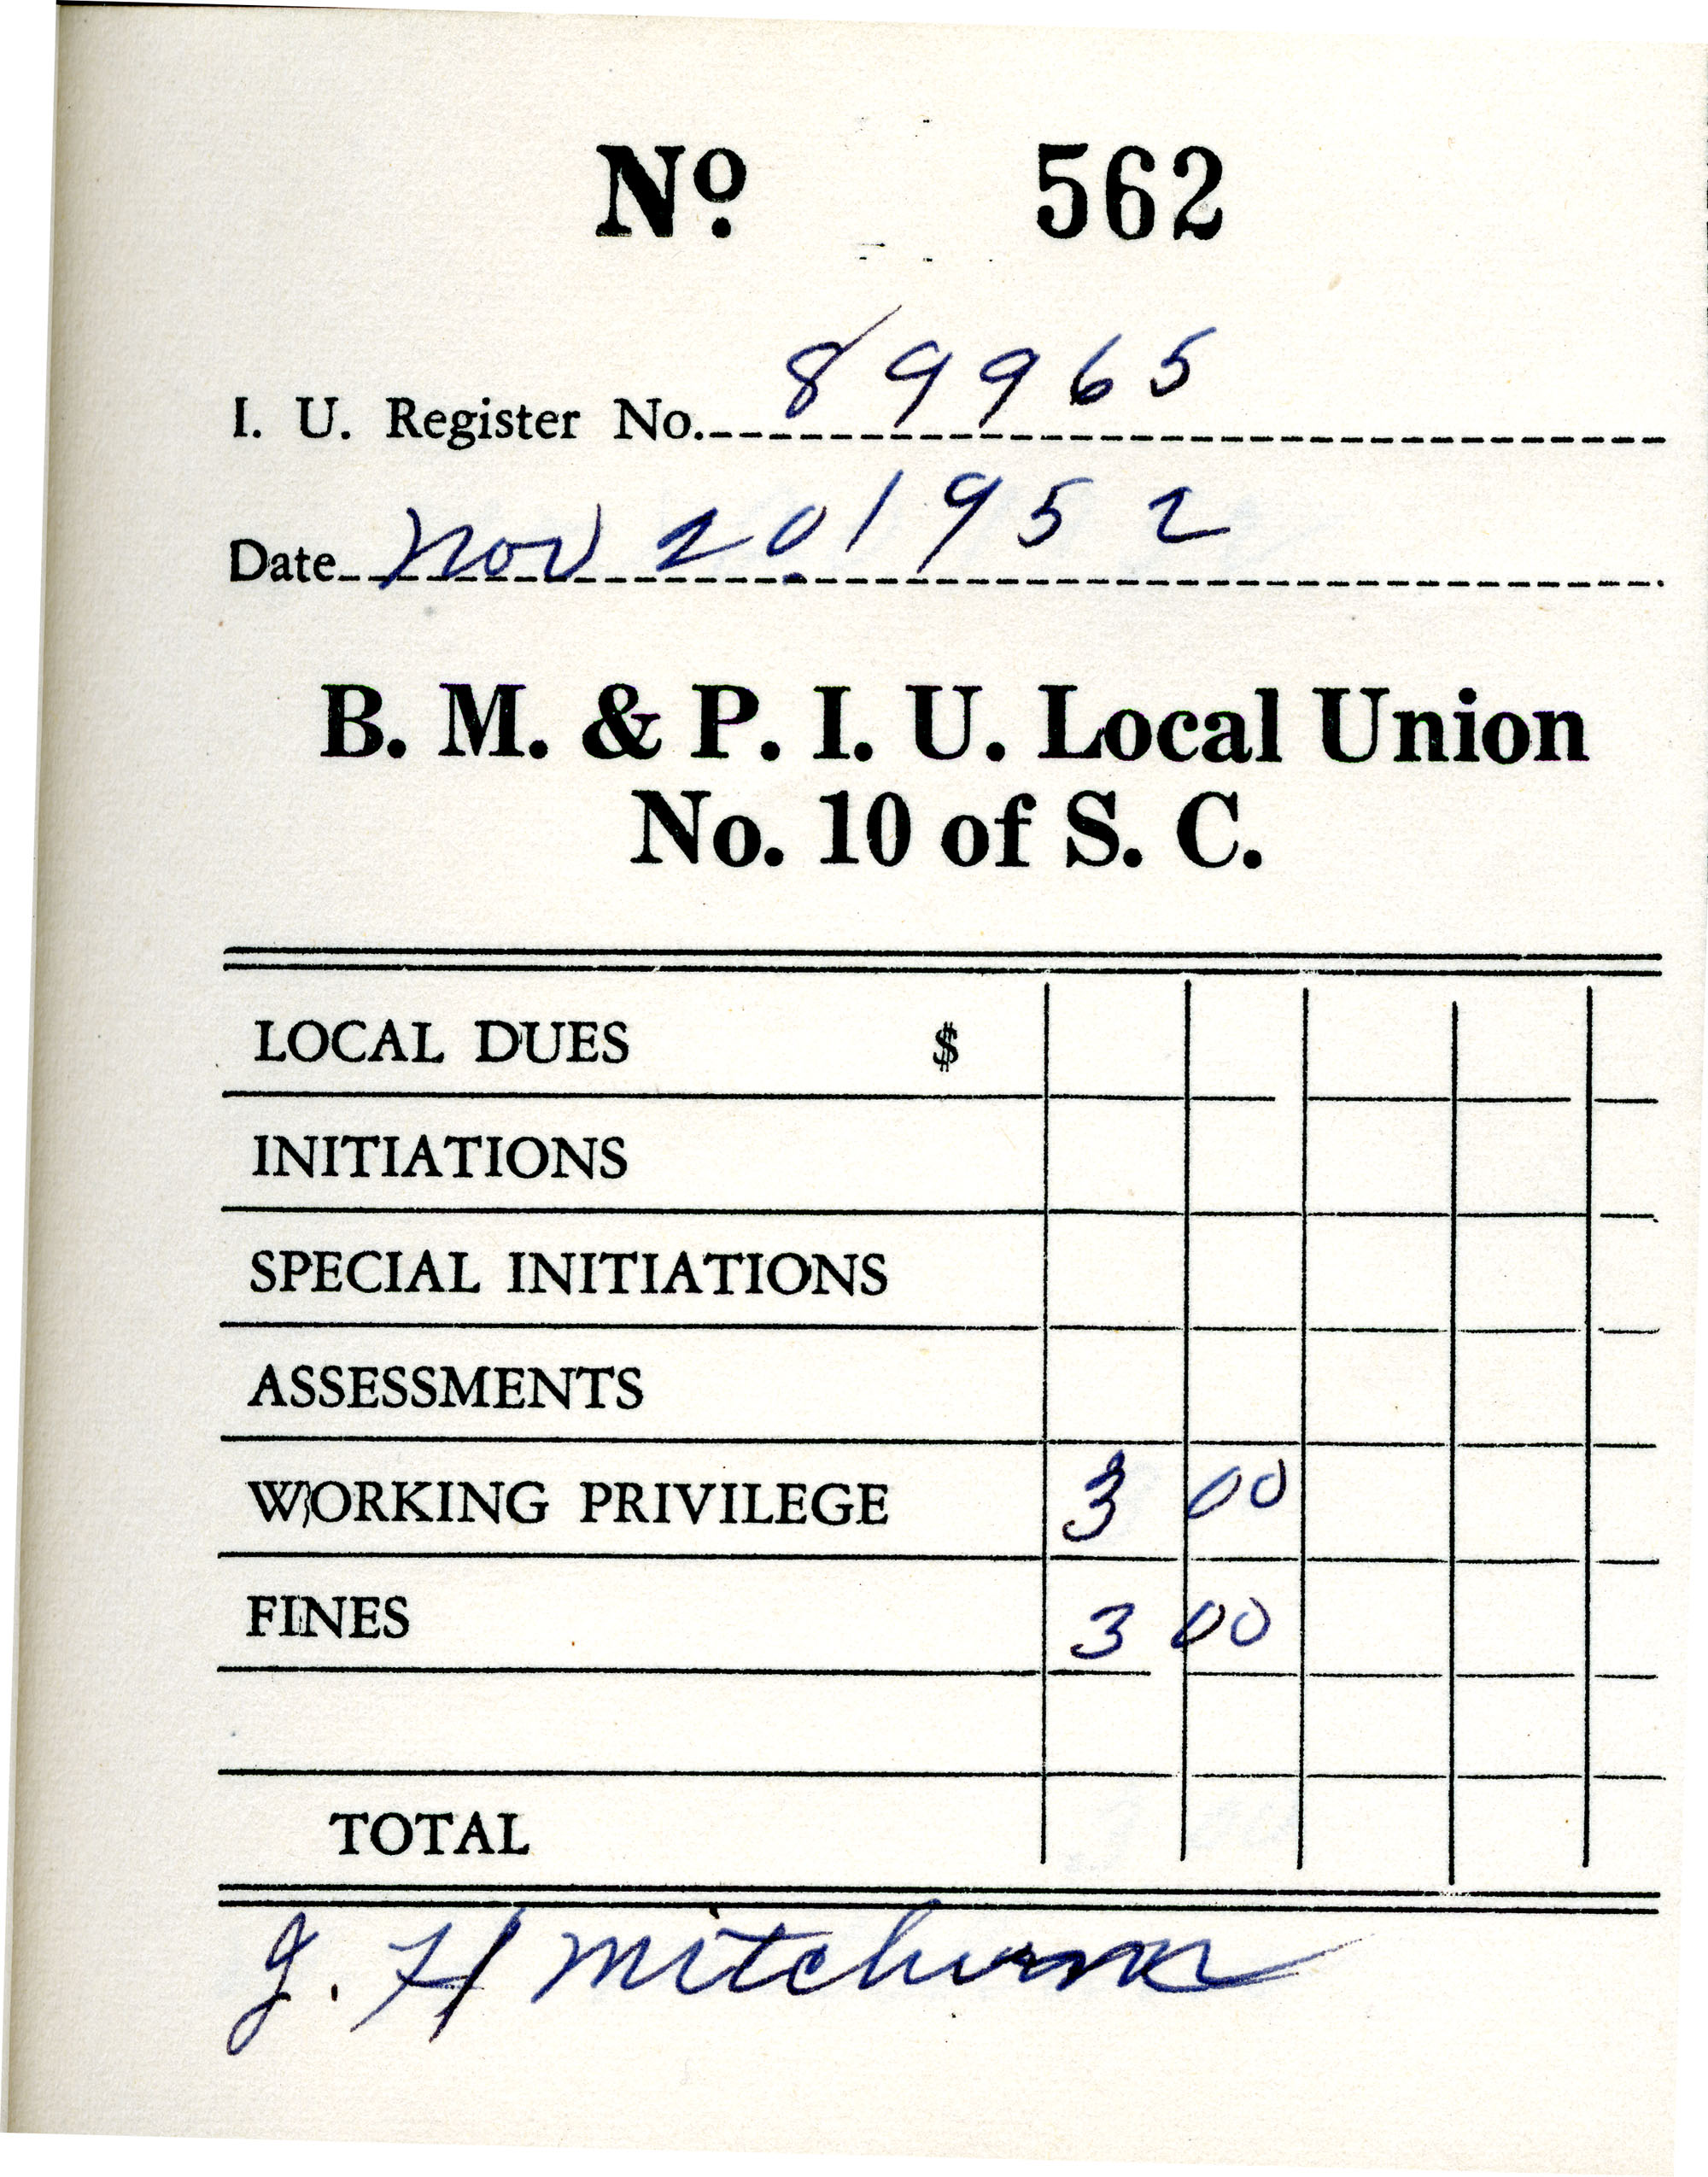 Receipt Book 1, Page 12